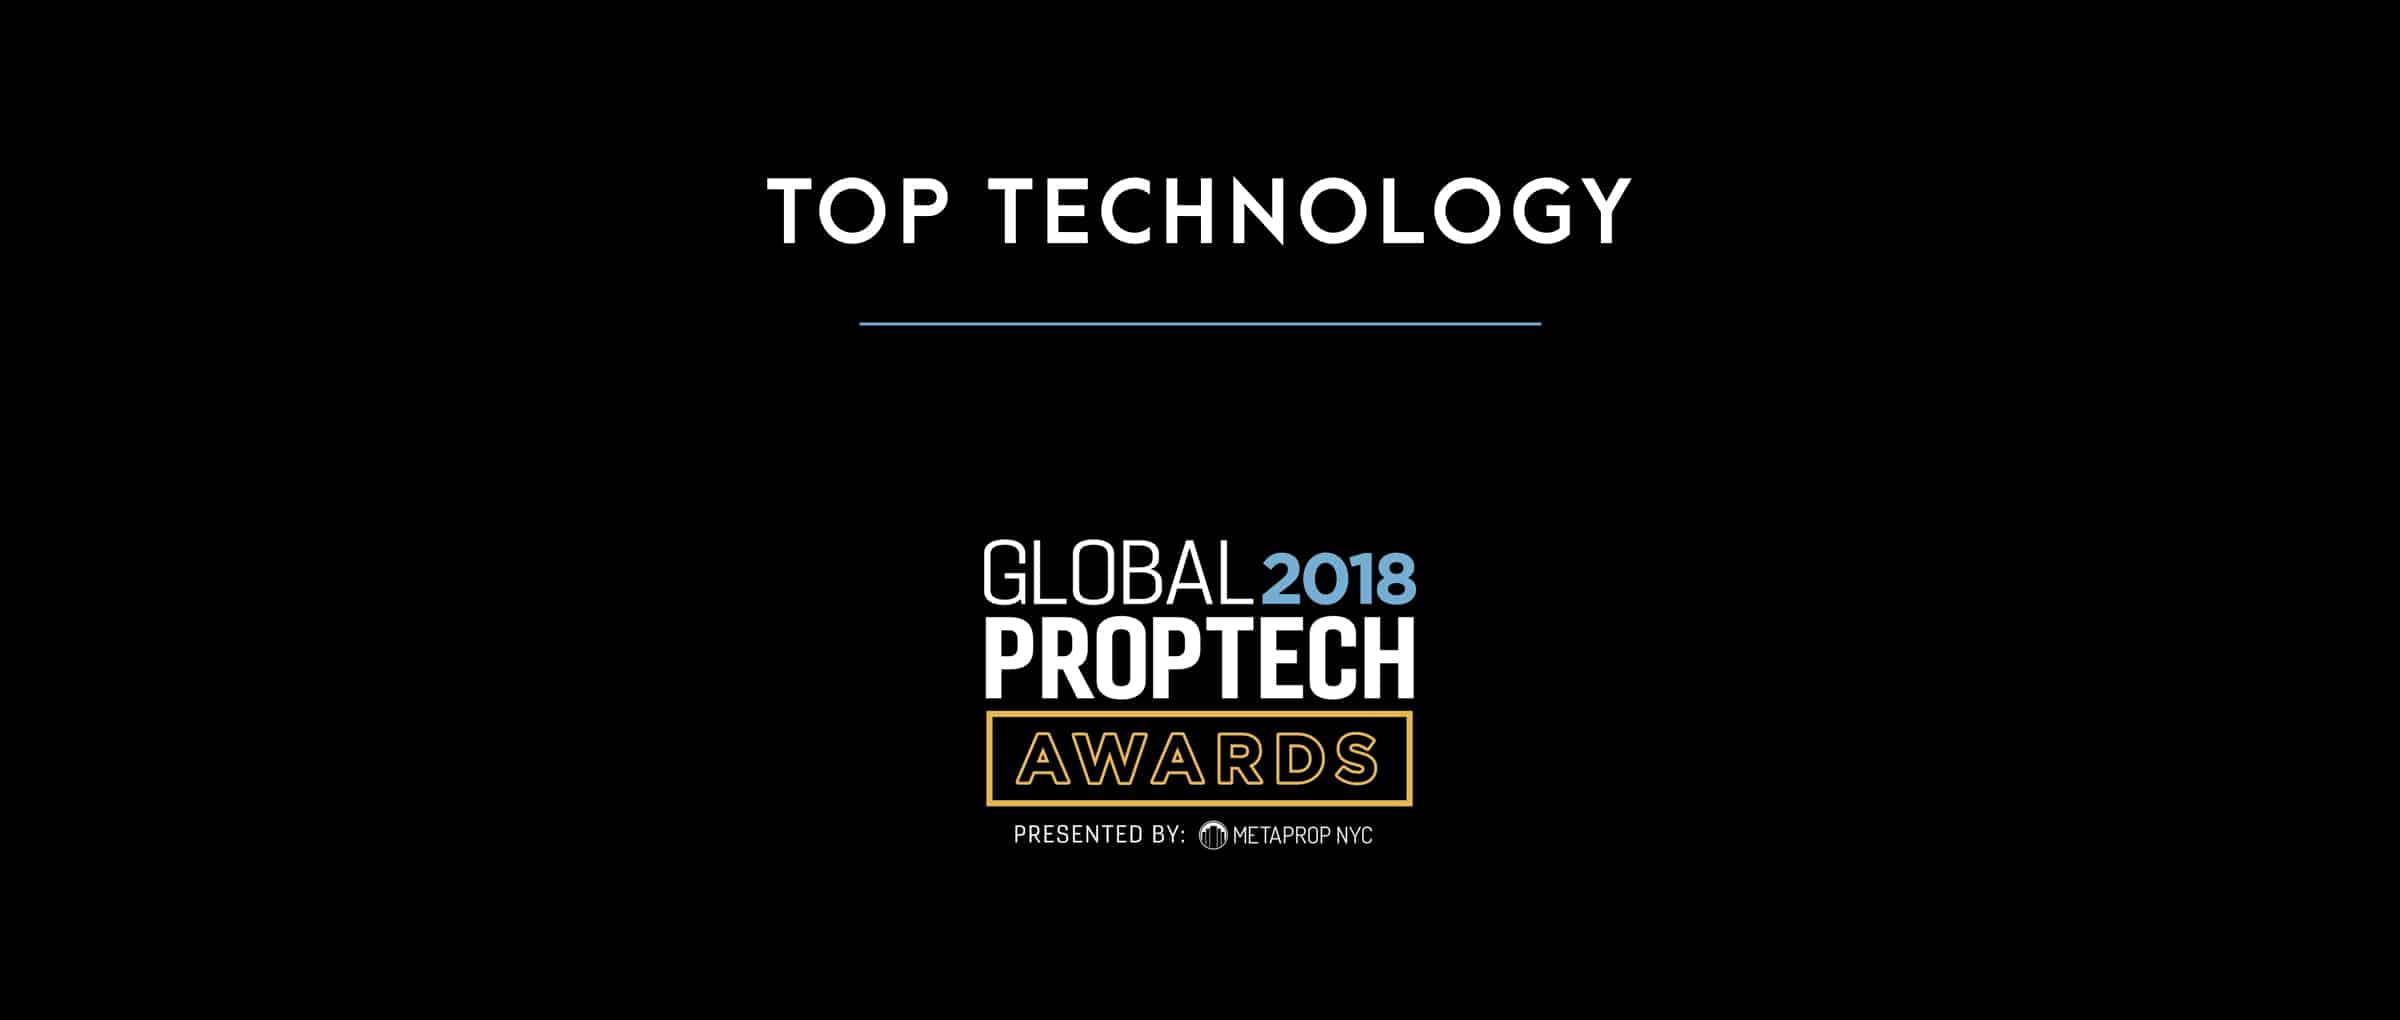 Top Technology PropTech Awards